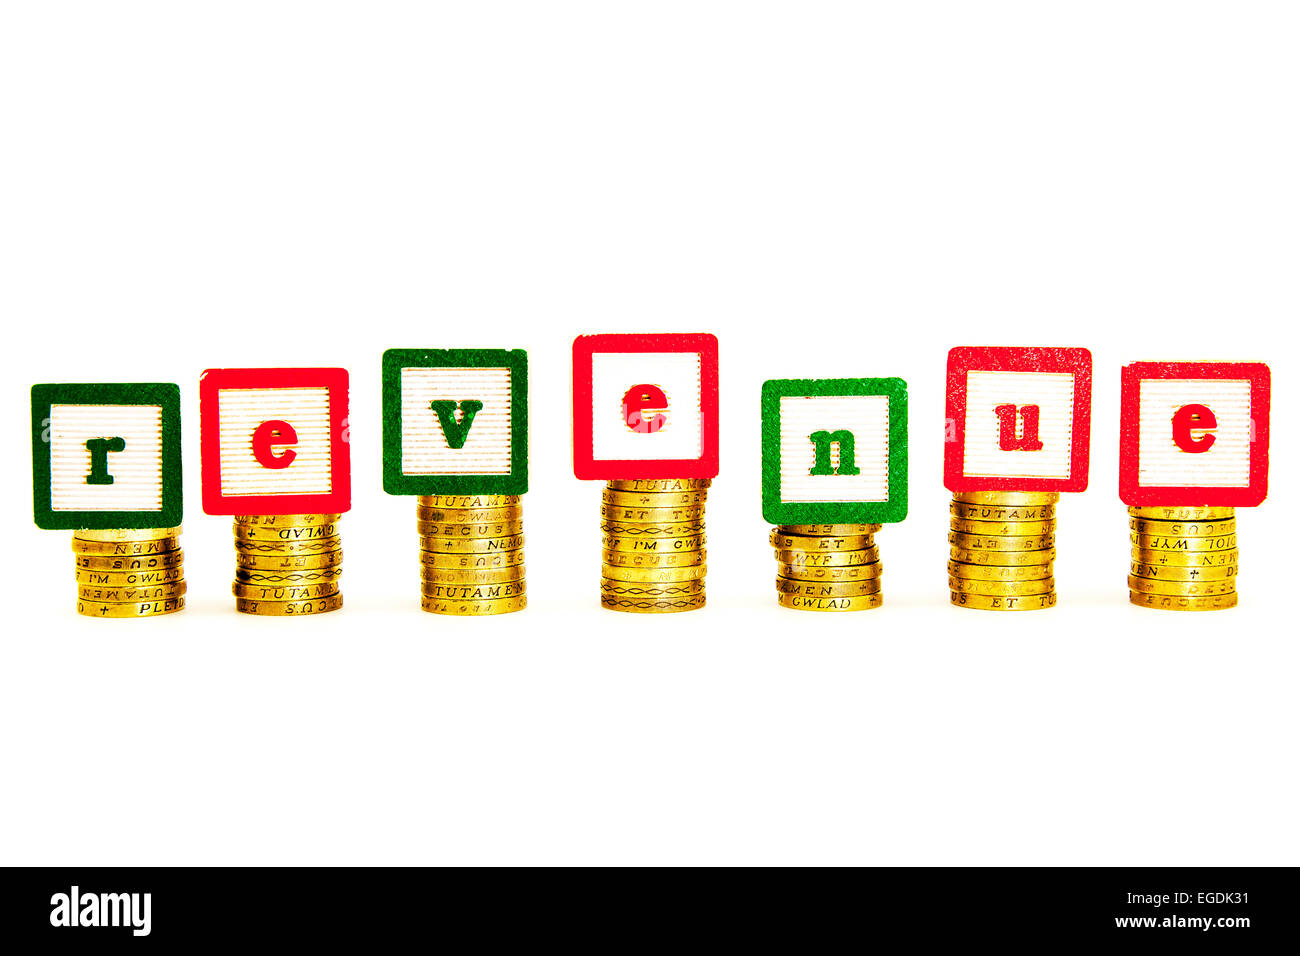 revenue cash collected fund funds money word income tax vat hmrc cut out copy space white background - Stock Image